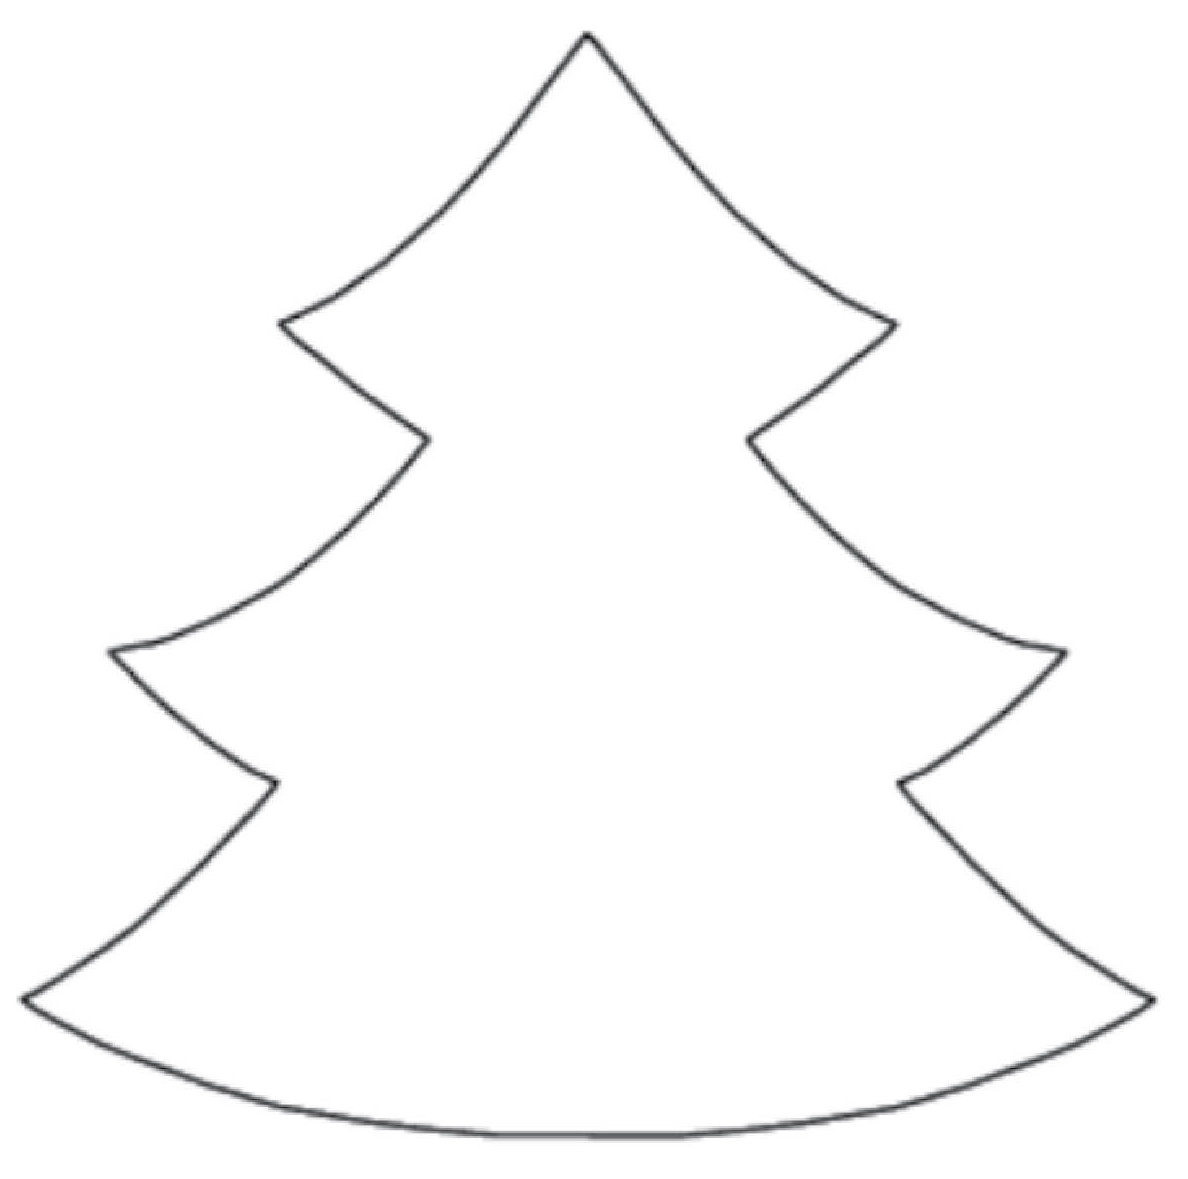 Légend image regarding christmas tree cutouts printable